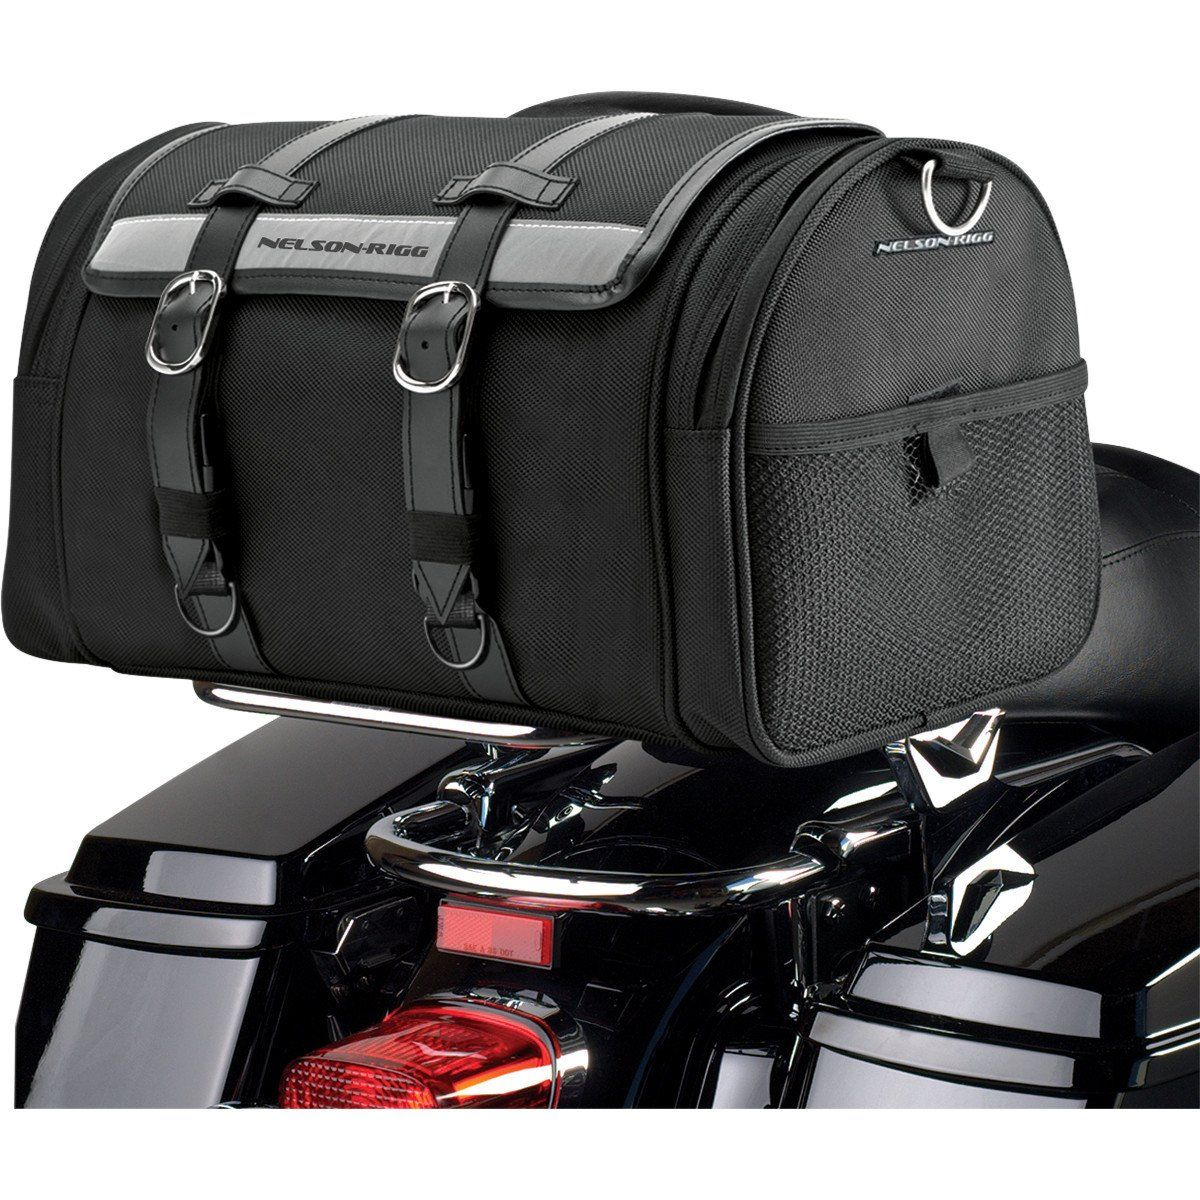 Motorcycle Luggage Rack Bag Alluring Riggpak Ctb 1020 Deluxe Barrel Bag  Barrel Bag And Products Design Ideas